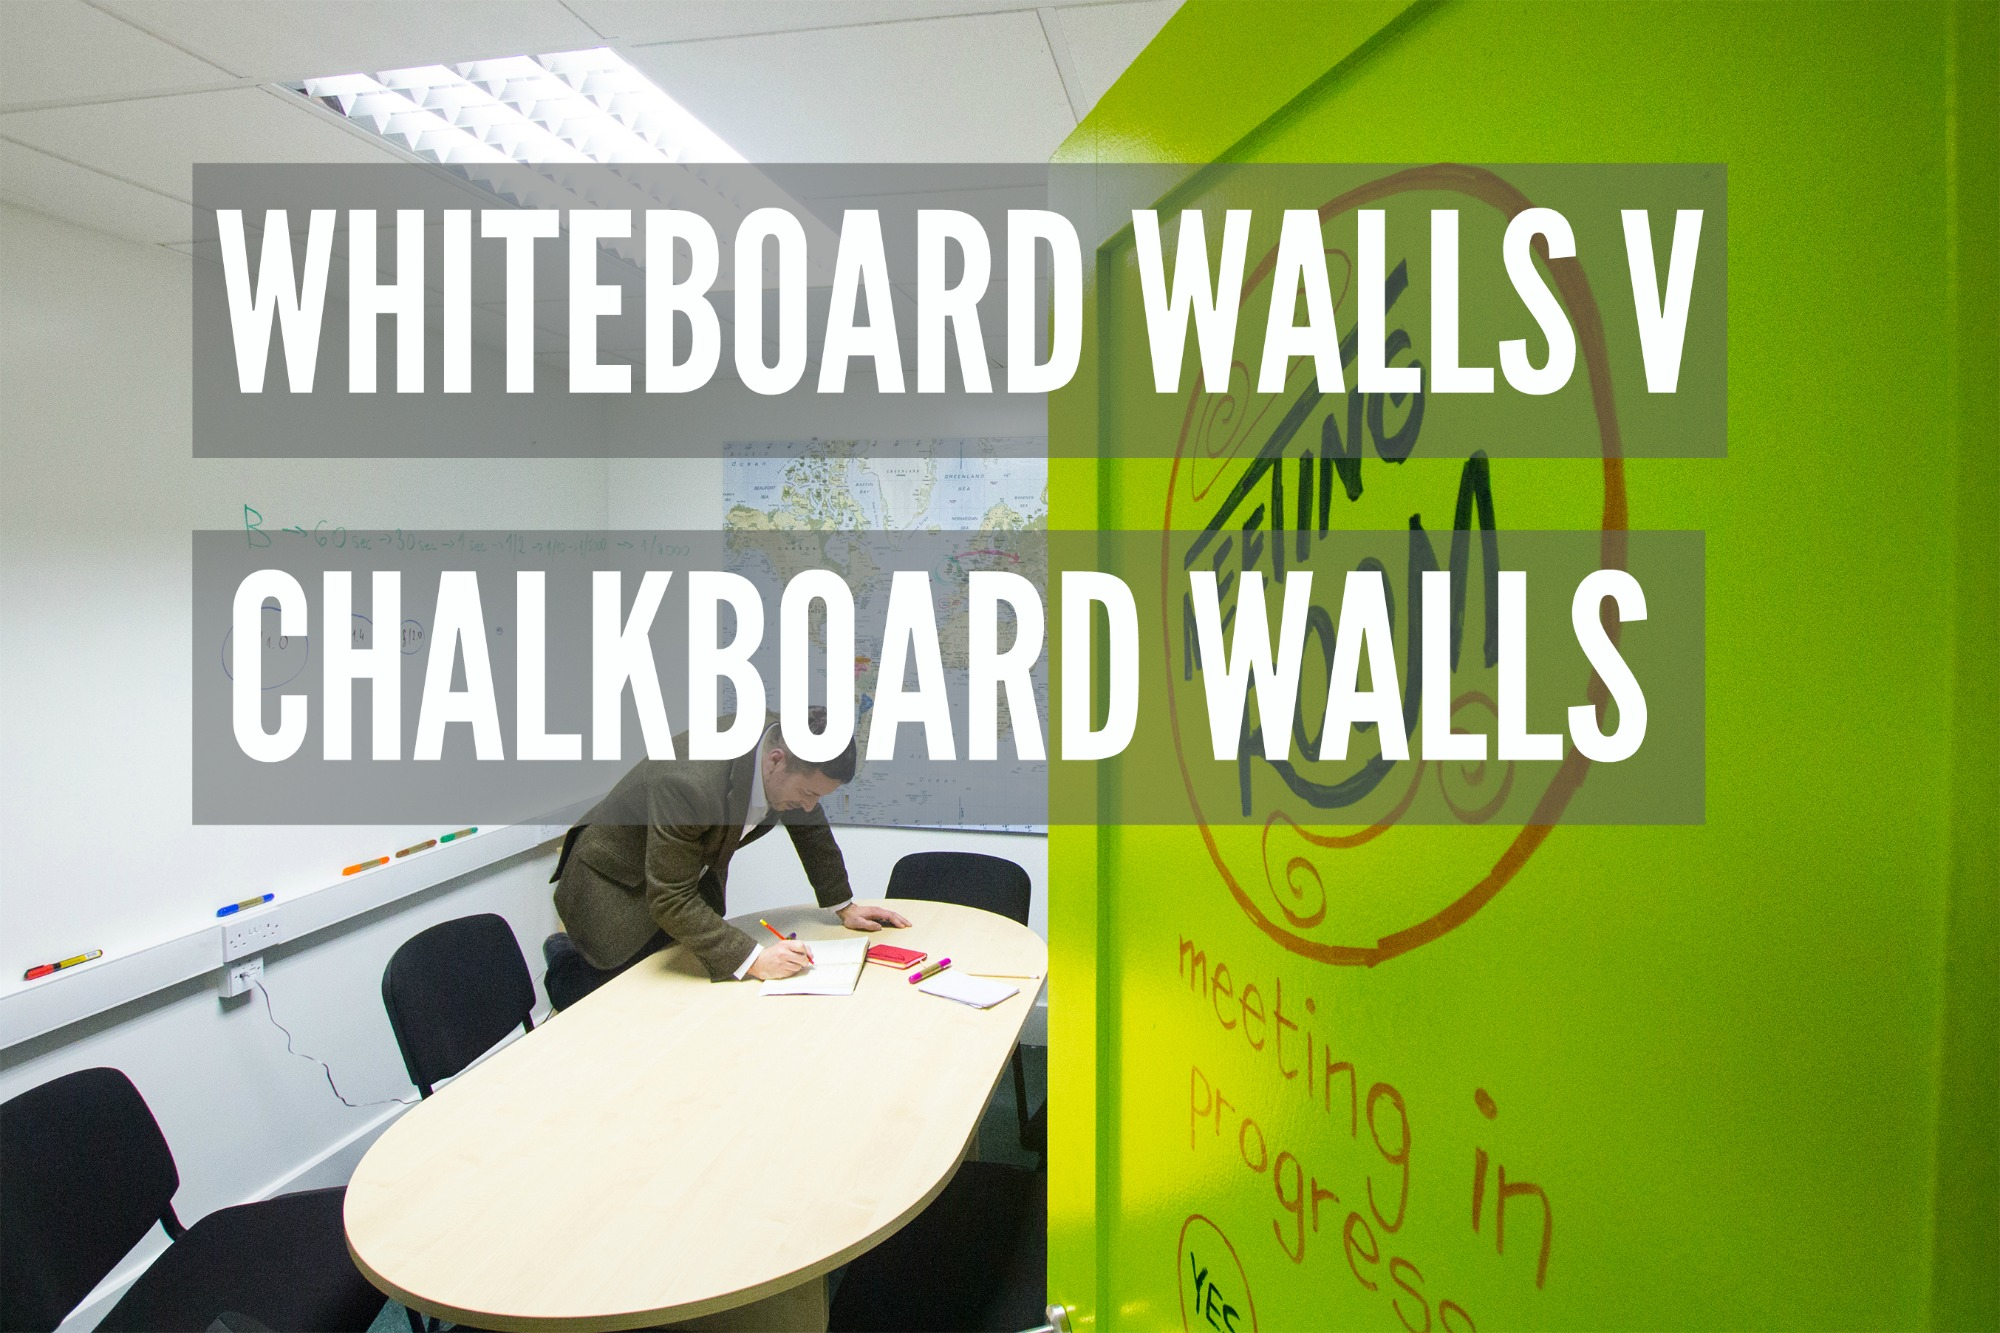 Turn A Wall Into A Whiteboard Whiteboard Walls V Chalkboard Walls Smarter Surfaces Blog